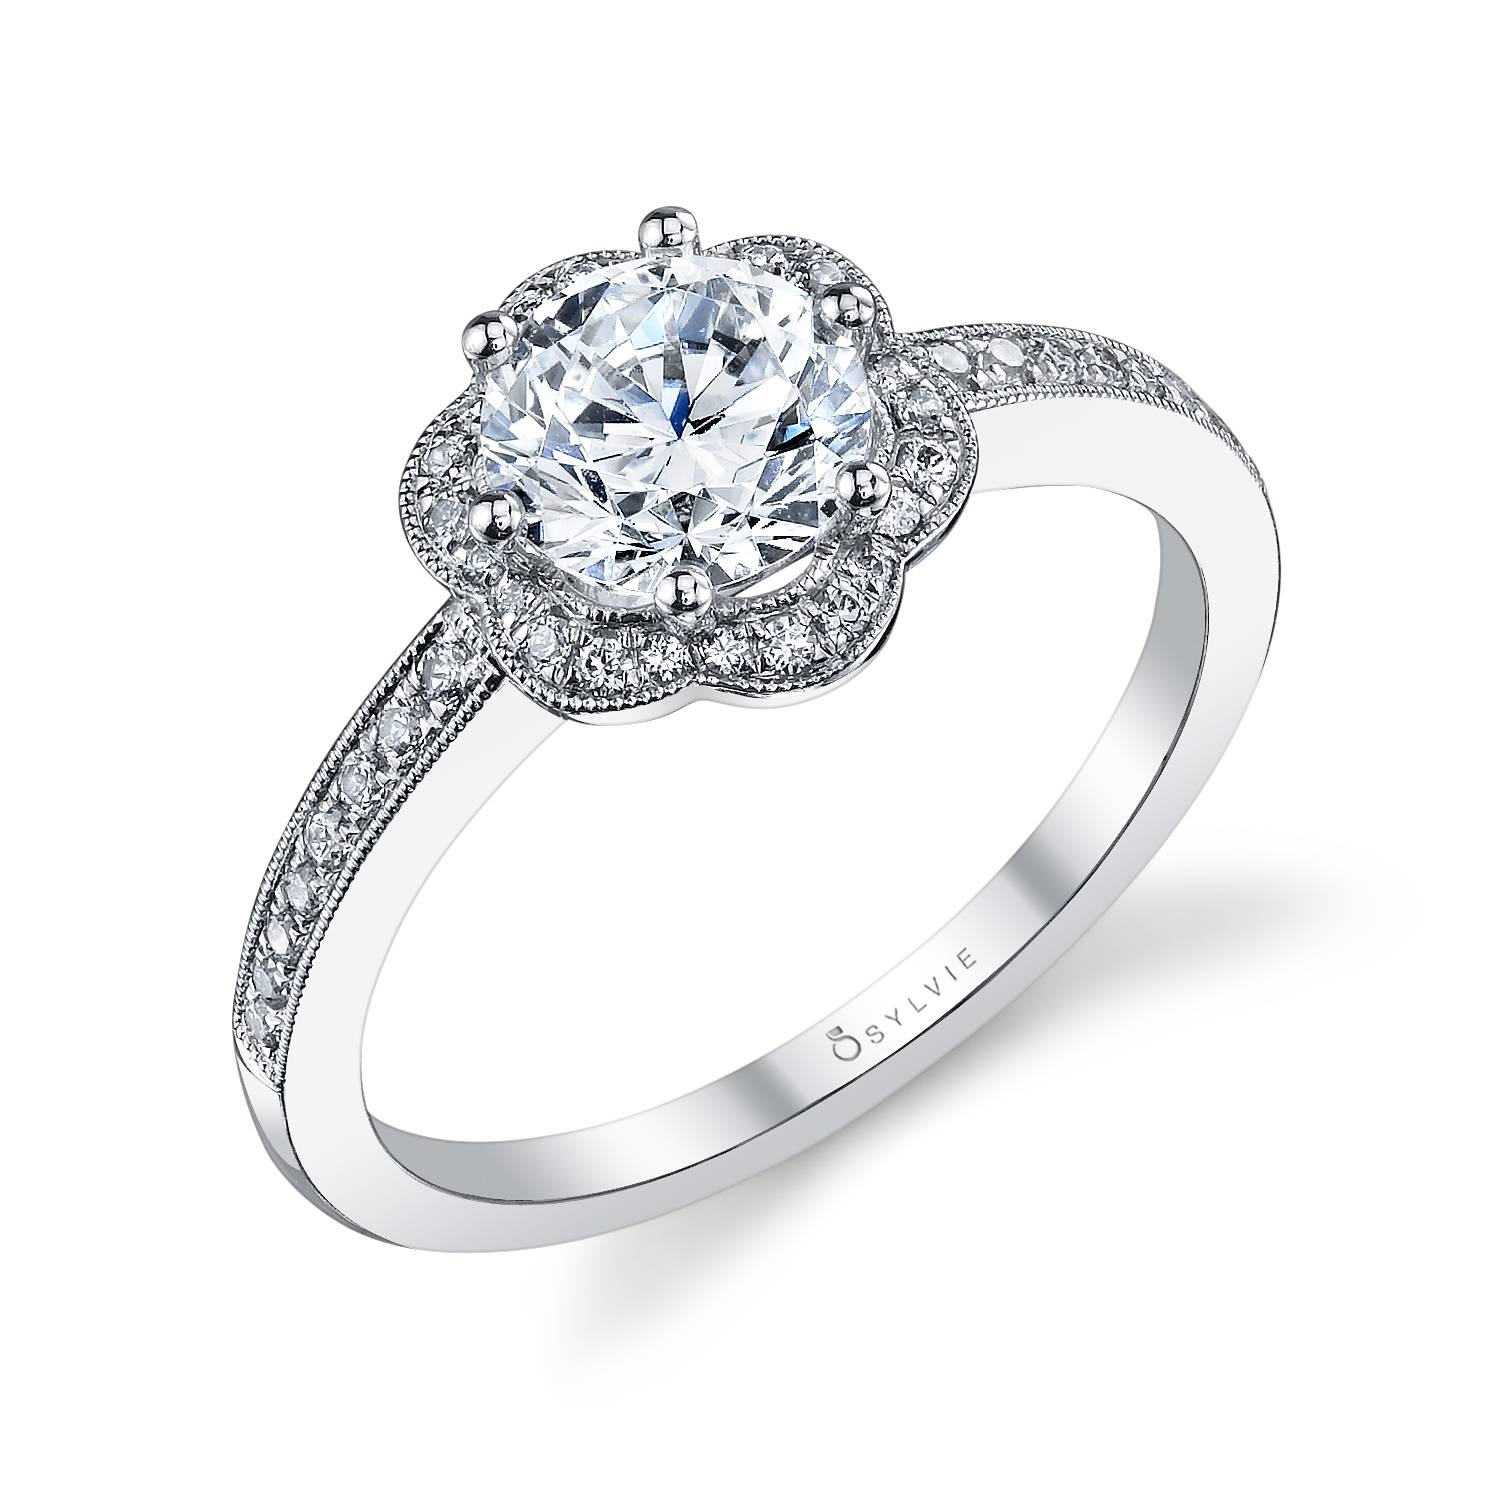 Flower Halo Prong Set Engagement Ring – Alexis Diamond Housealexis Regarding Jewelry Stores Wedding Rings (View 10 of 15)